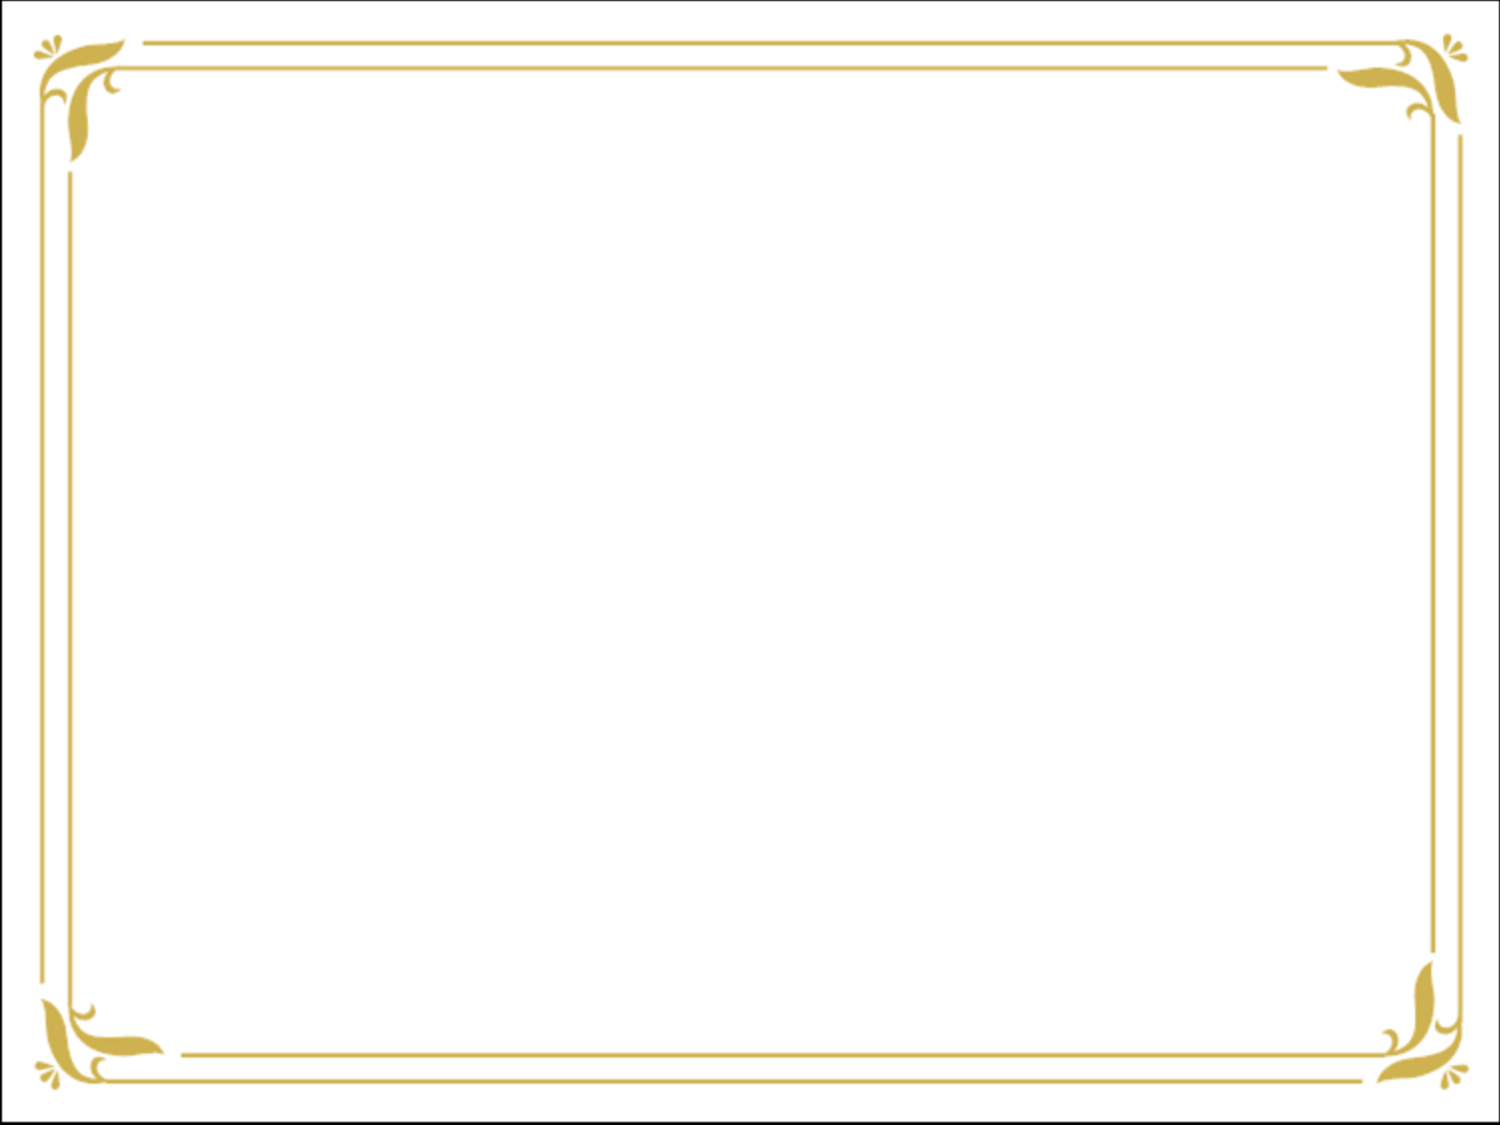 Simple Gold Certificate Border Slide Backgrounds | Free ...